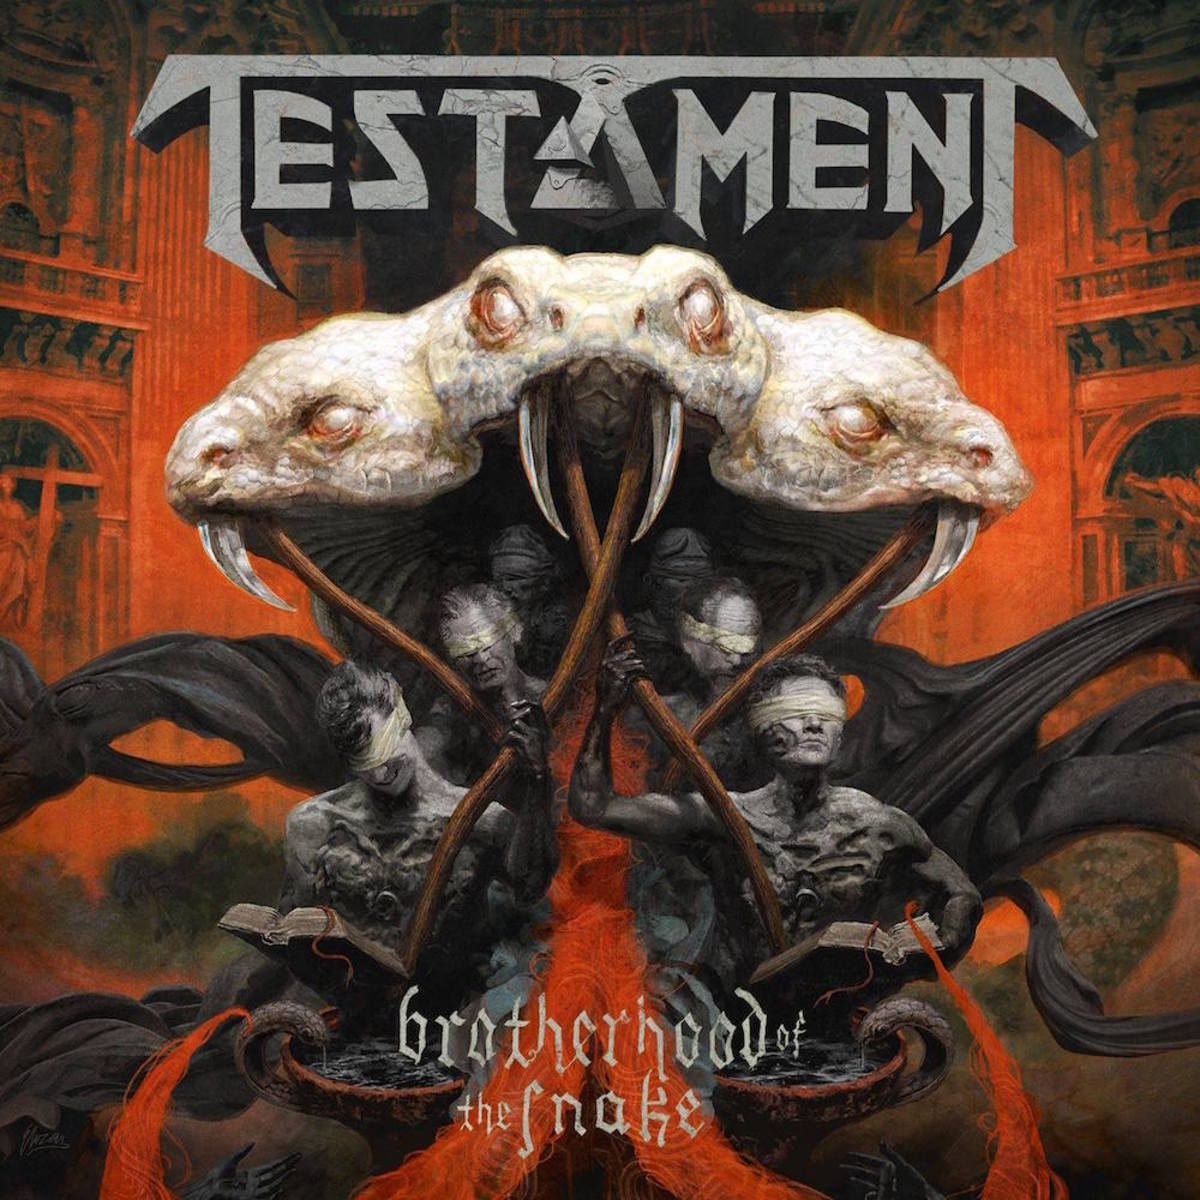 A Review of Testament's